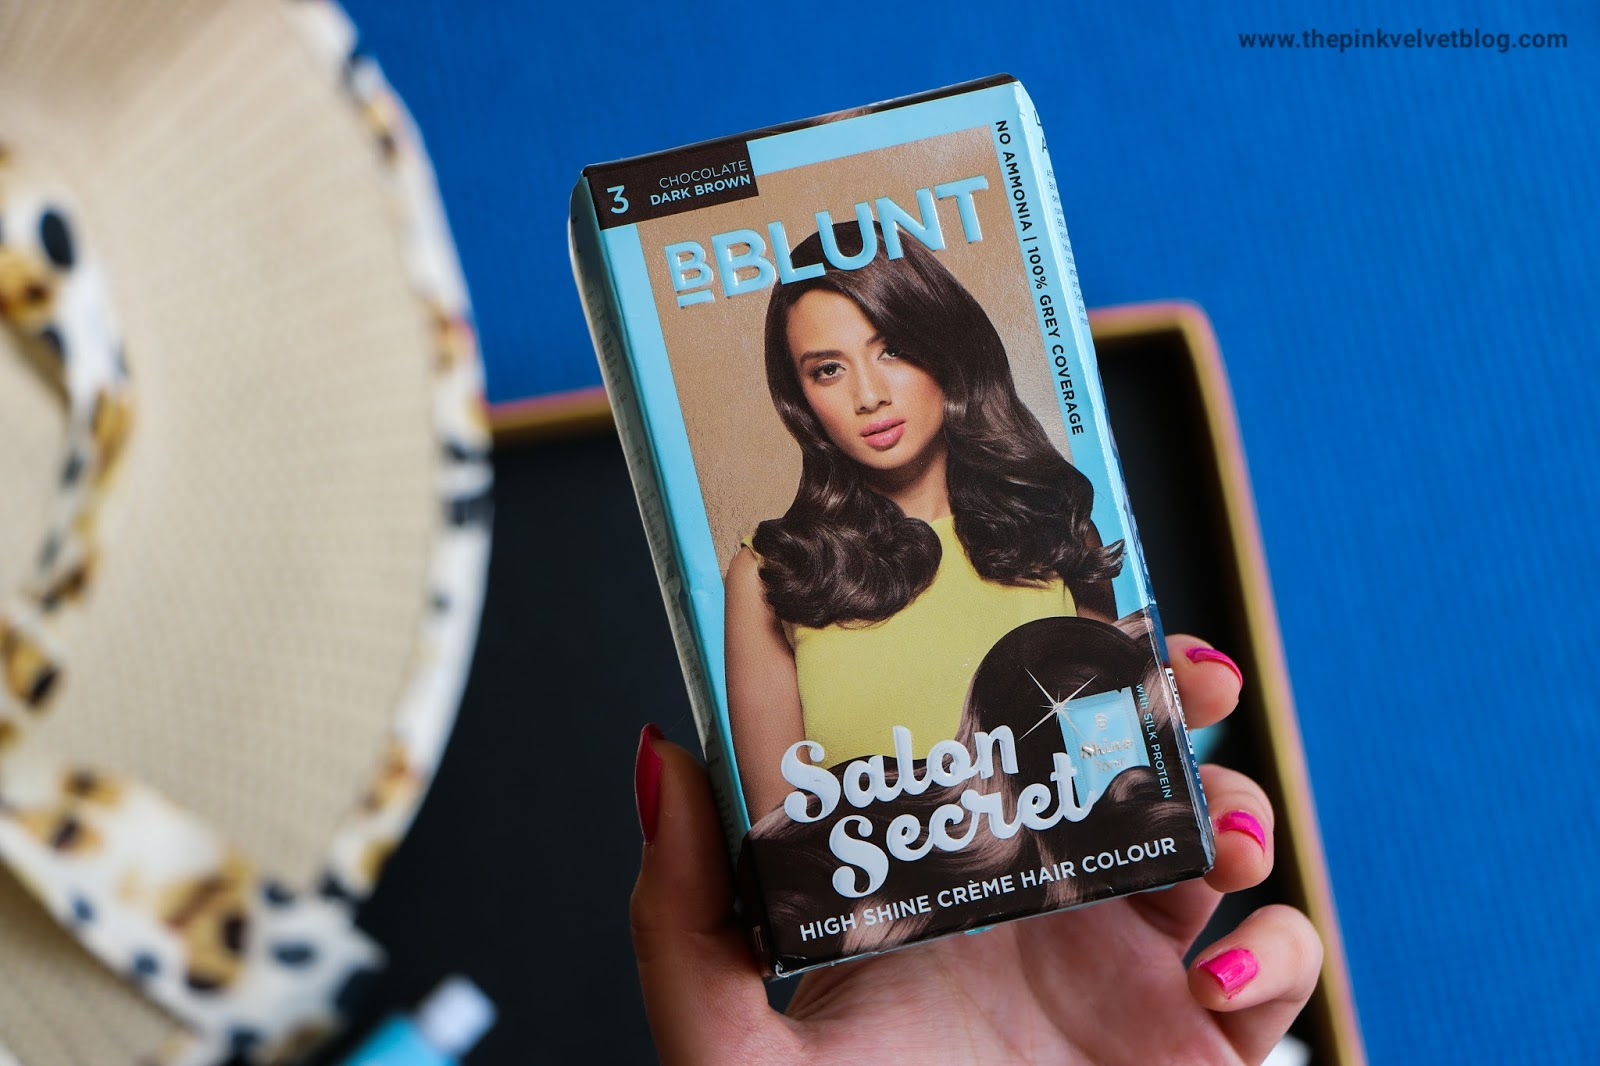 c6108c69547 My Experience With BBLUNT Salon Secret High Shine Creme Hair Color ...